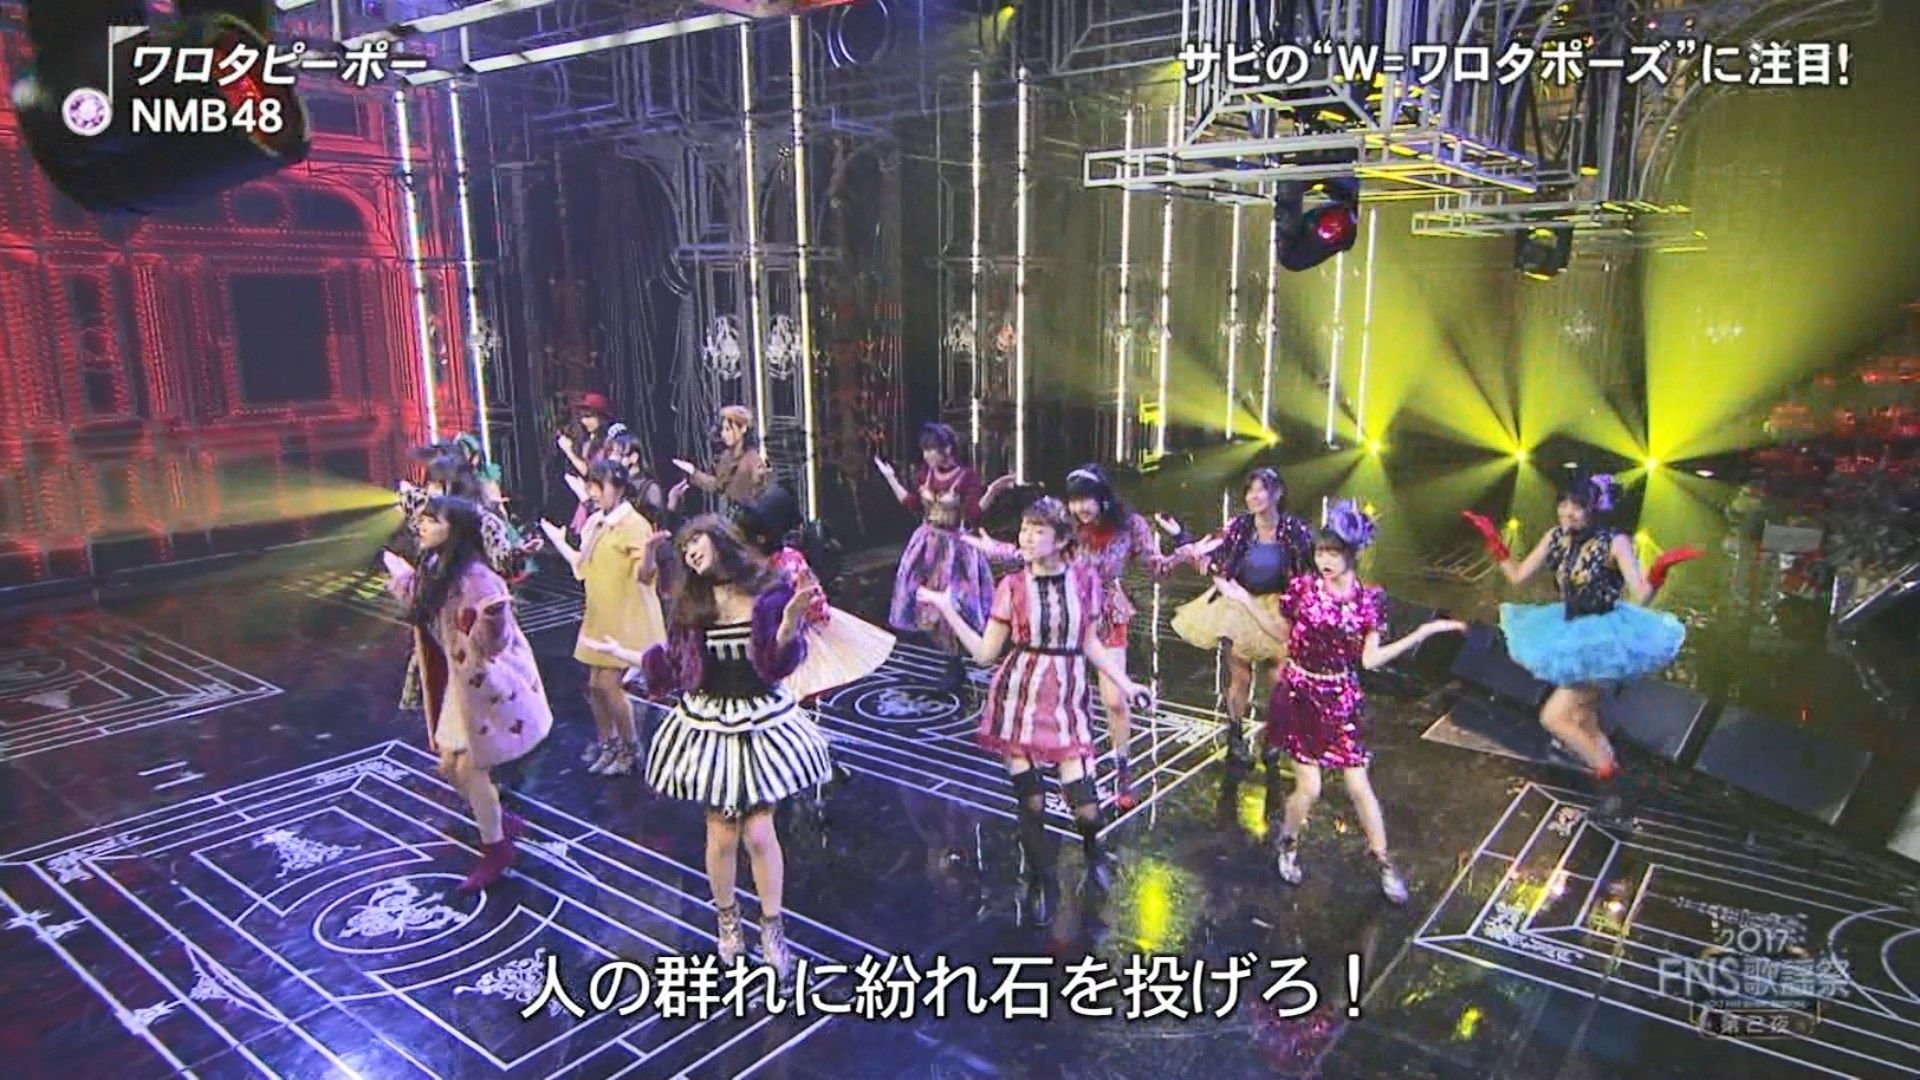 2017FNS歌謡祭第2夜・NMB48ワロタピーポーキャプ-067